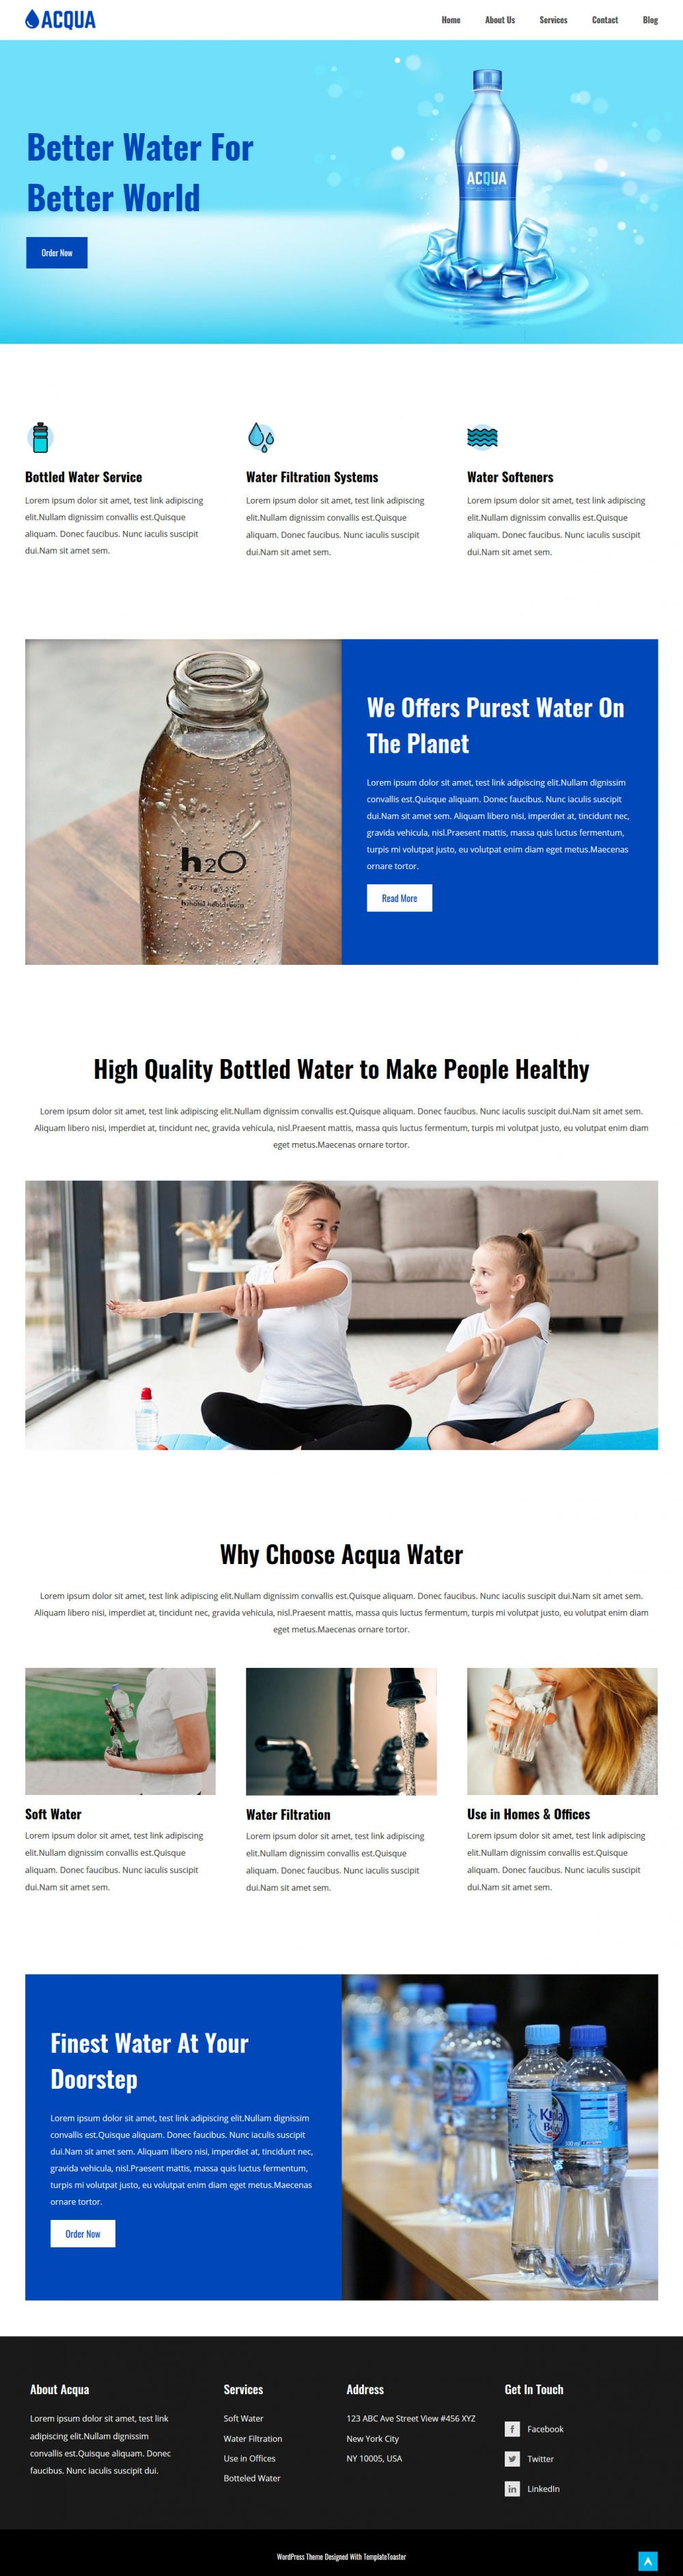 acqua water purifier and delivery wordpress theme